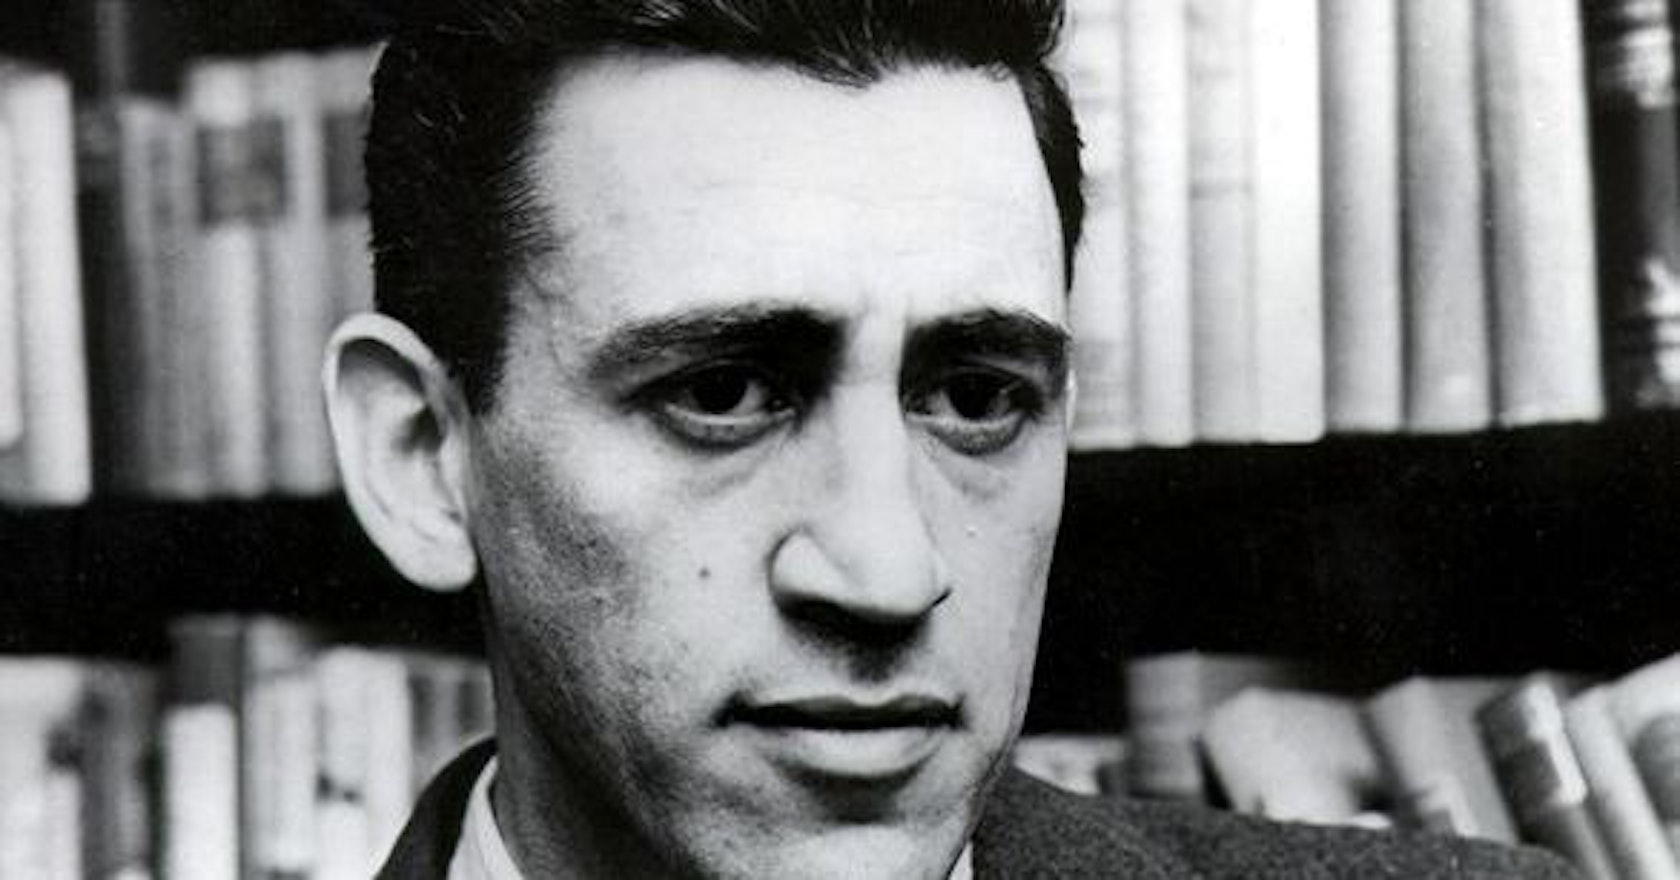 the quest for happiness in the literary works of jd salinger Choose from 500 different sets of theme american literature flashcards on quizlet  quest for freedom  a category used to classify literary works,.